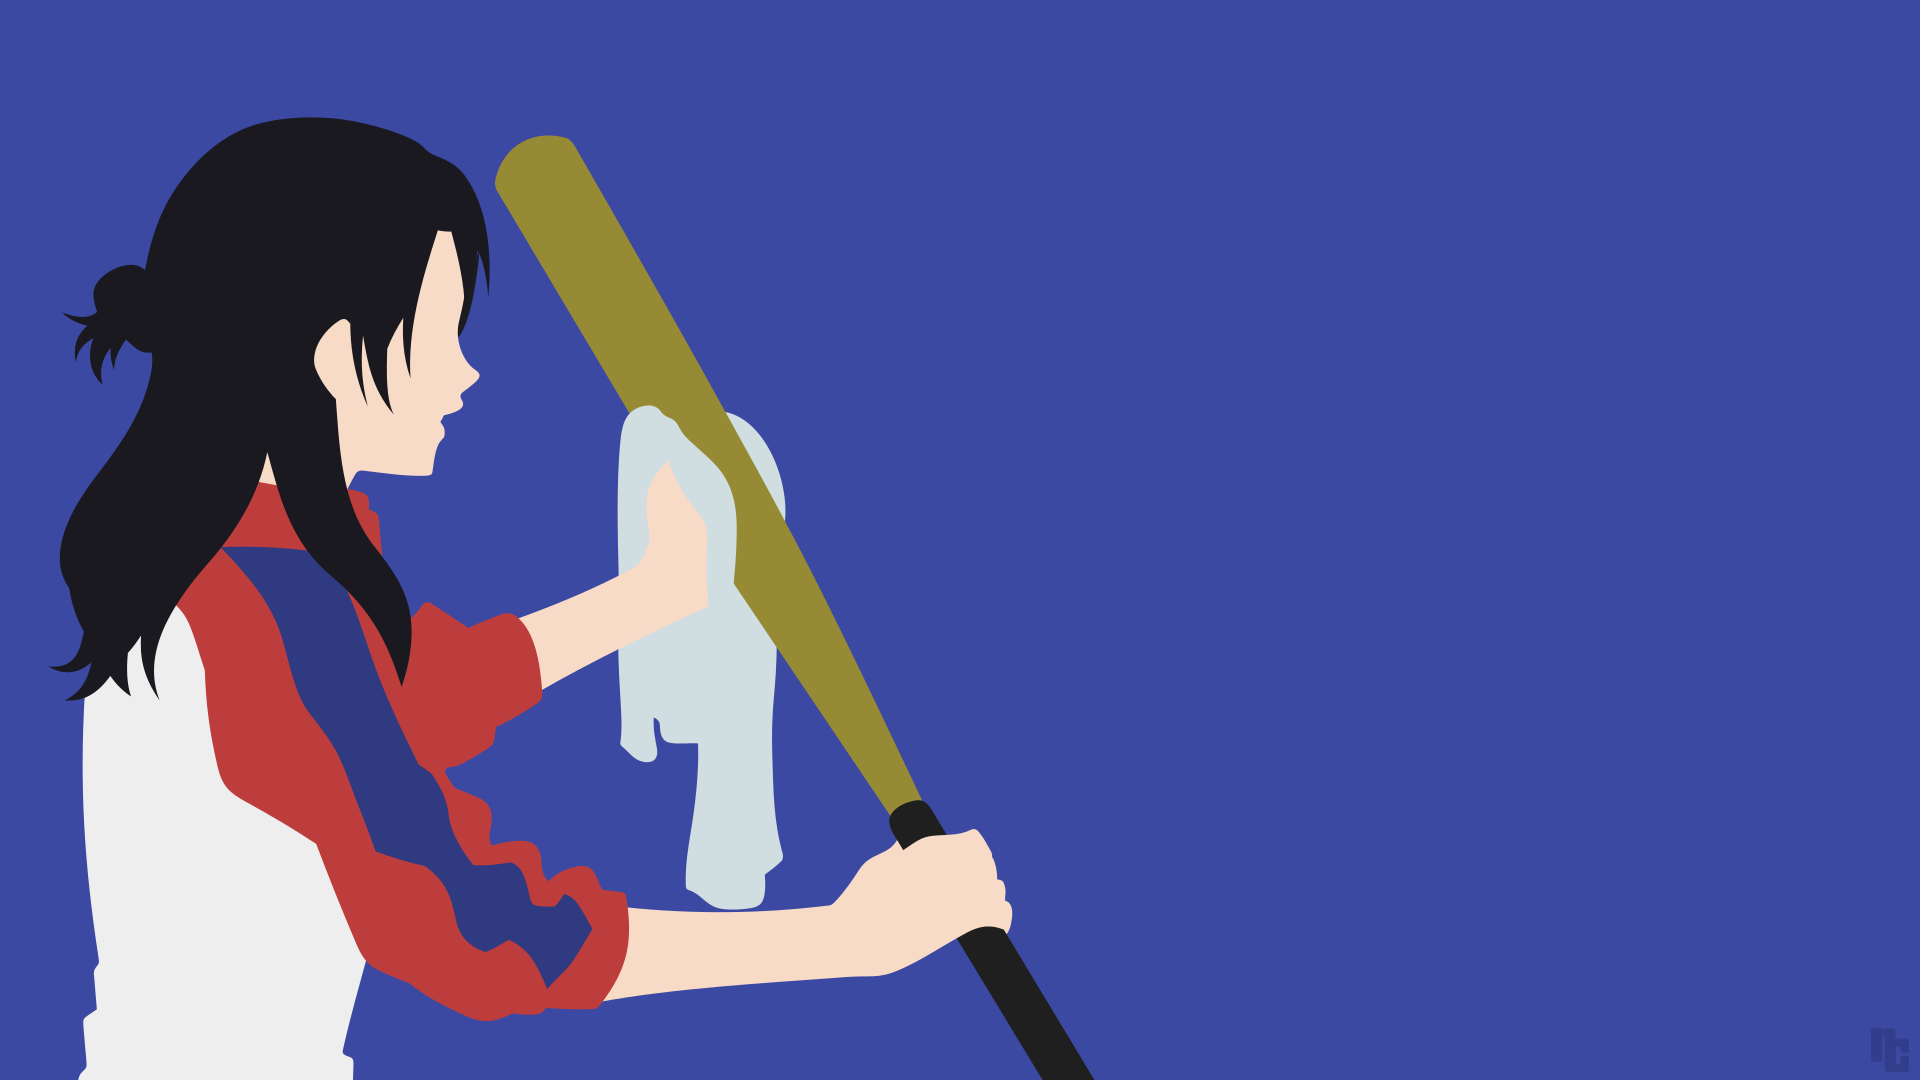 Ace Of Diamond Takako Fujiwara Minimalist Wallpaper